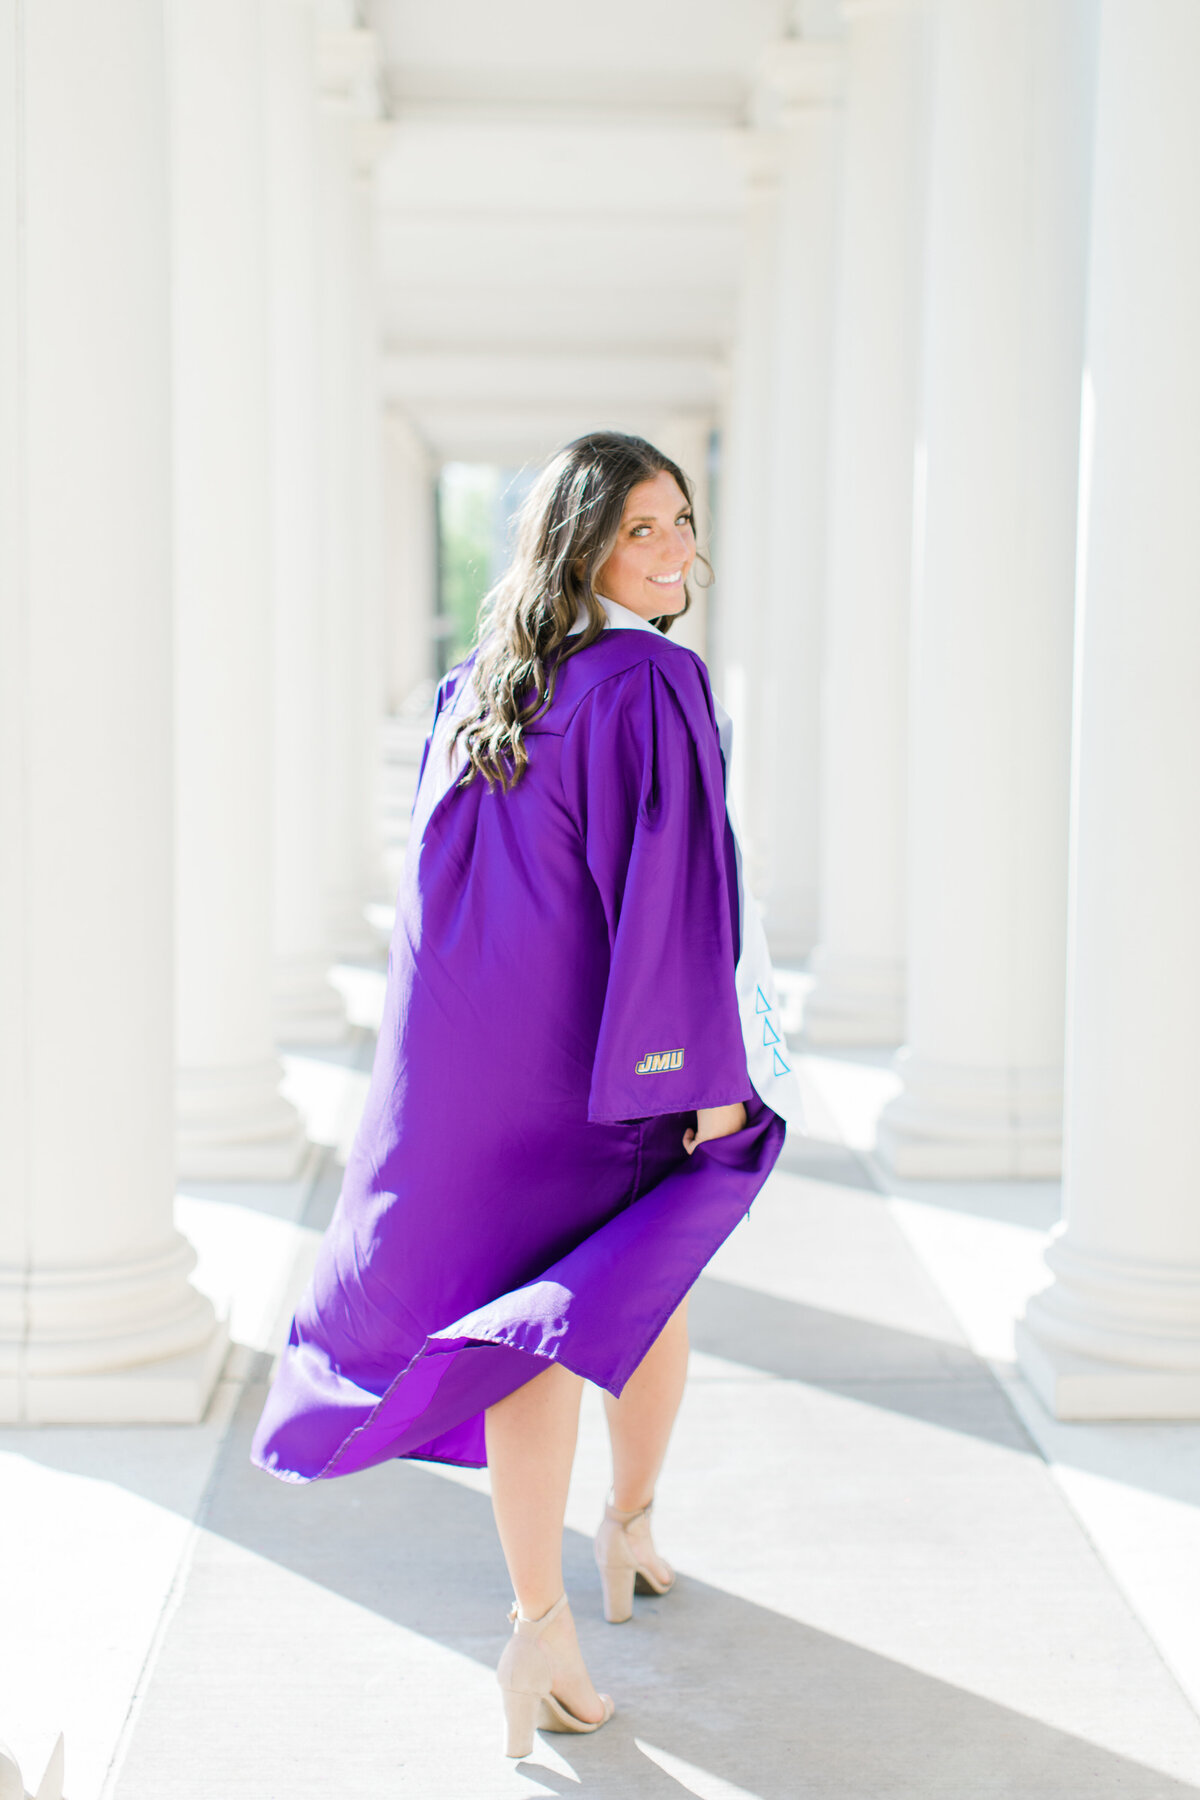 JMU_Senior_Graduation_Session_2020_Angelika_Johns_Photography-3086